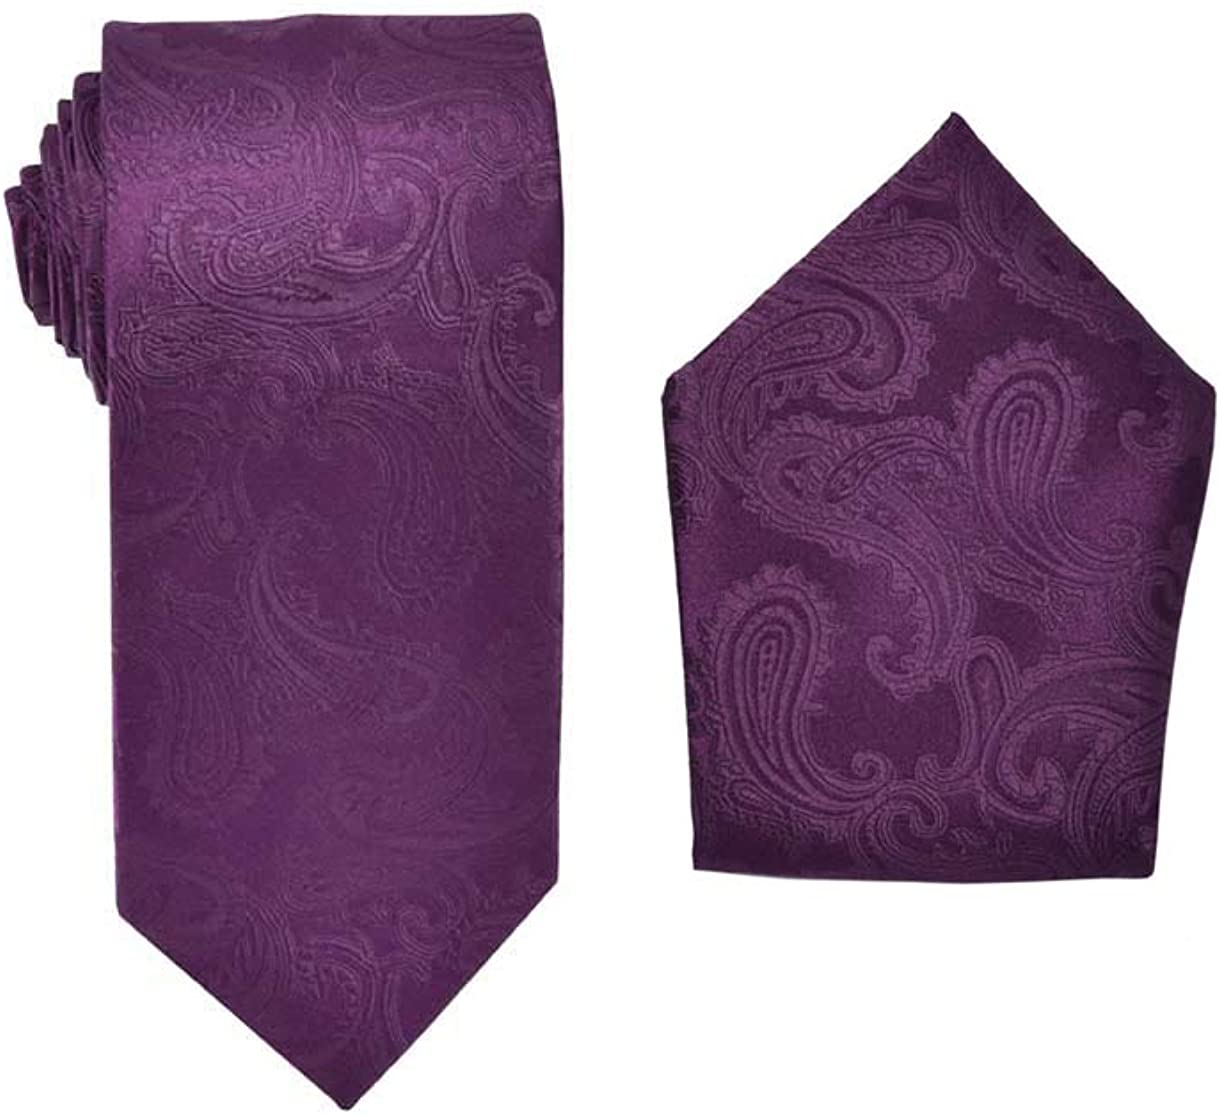 Men's Premium Paisley Patterned Necktie with Matching Pocket Square Set For Suits & Tuxedos-Many colors